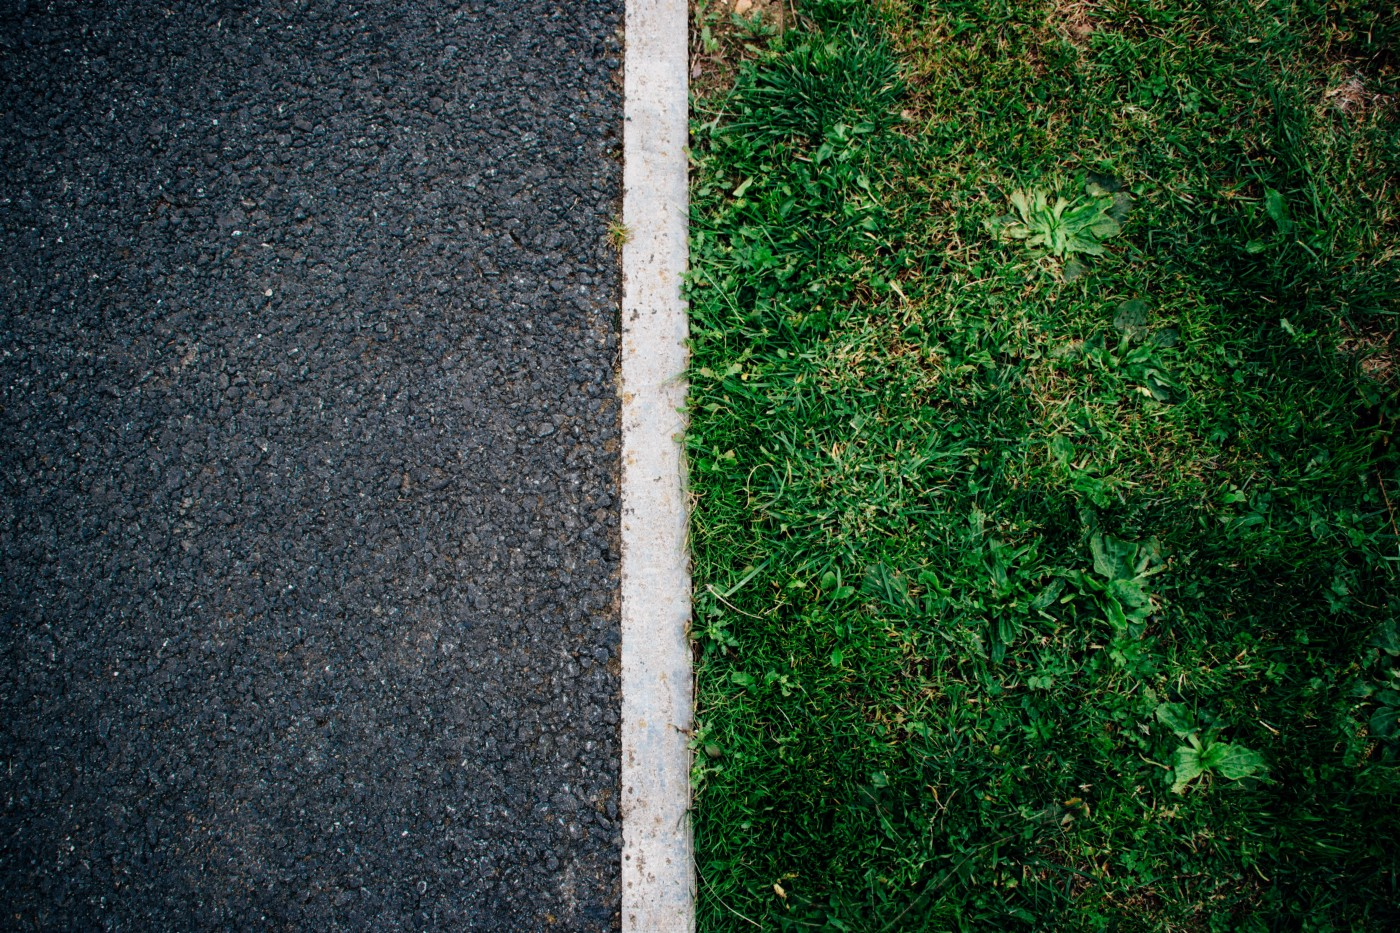 Photo of asphalt separated from grass with a white dividing line, by Will Francis on Unsplash.